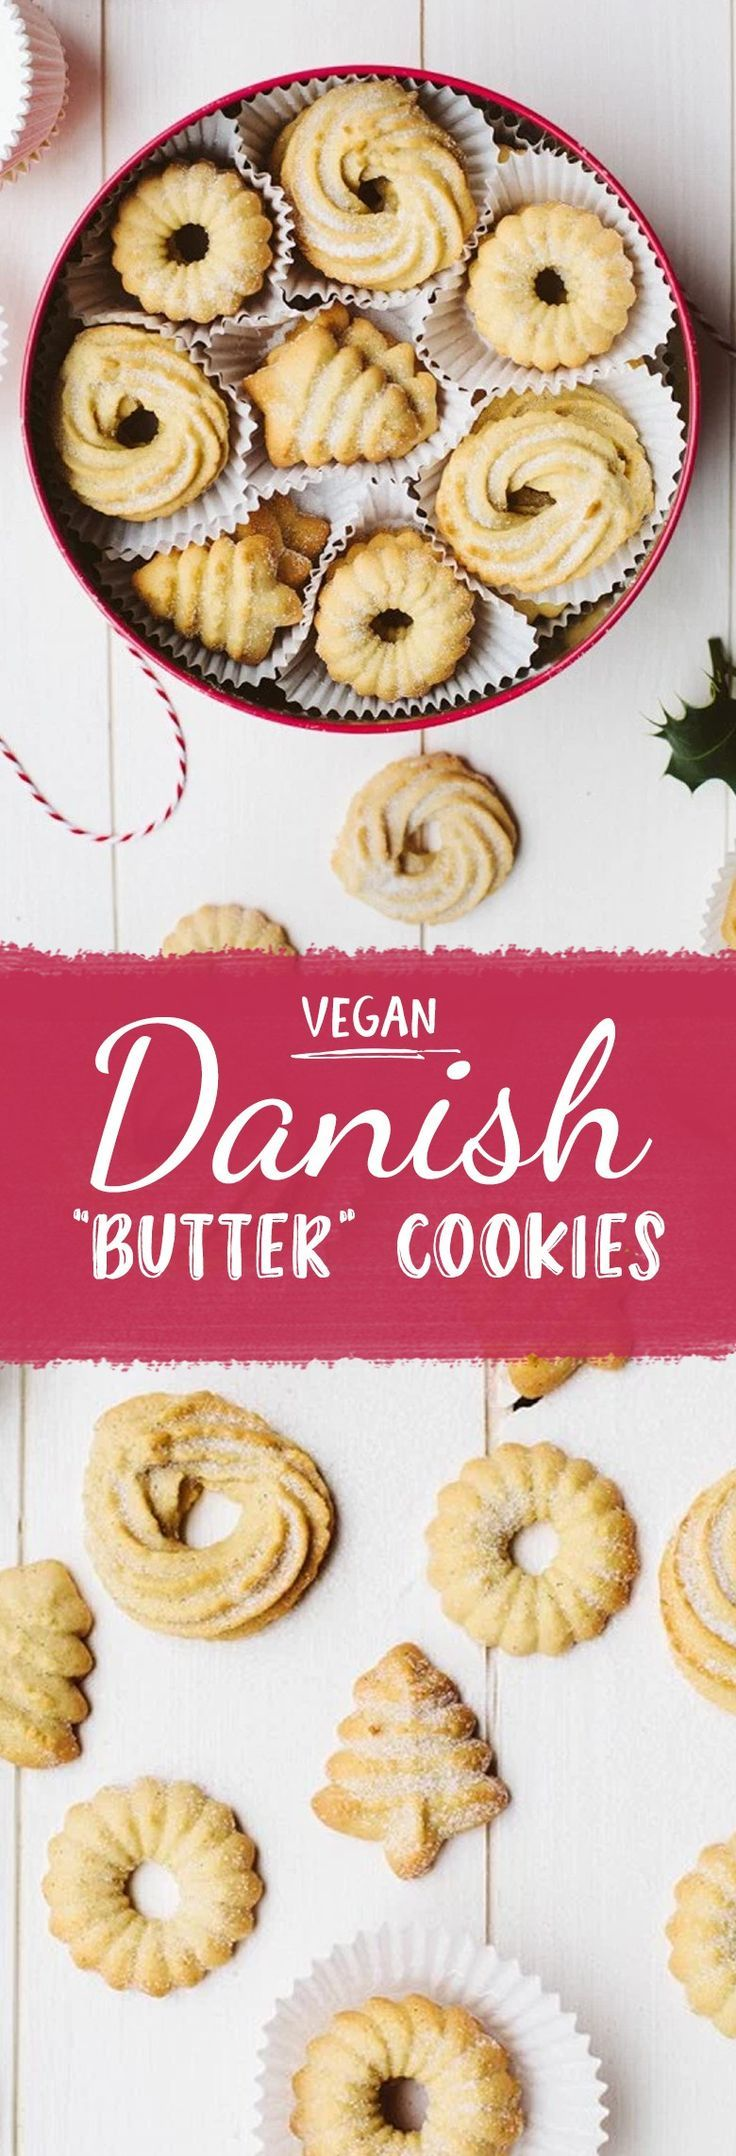 THIS! Not as healthy, but Christmas is coming up and who doesn't enjoy a cruelty free butter cookie? || vegan recipe